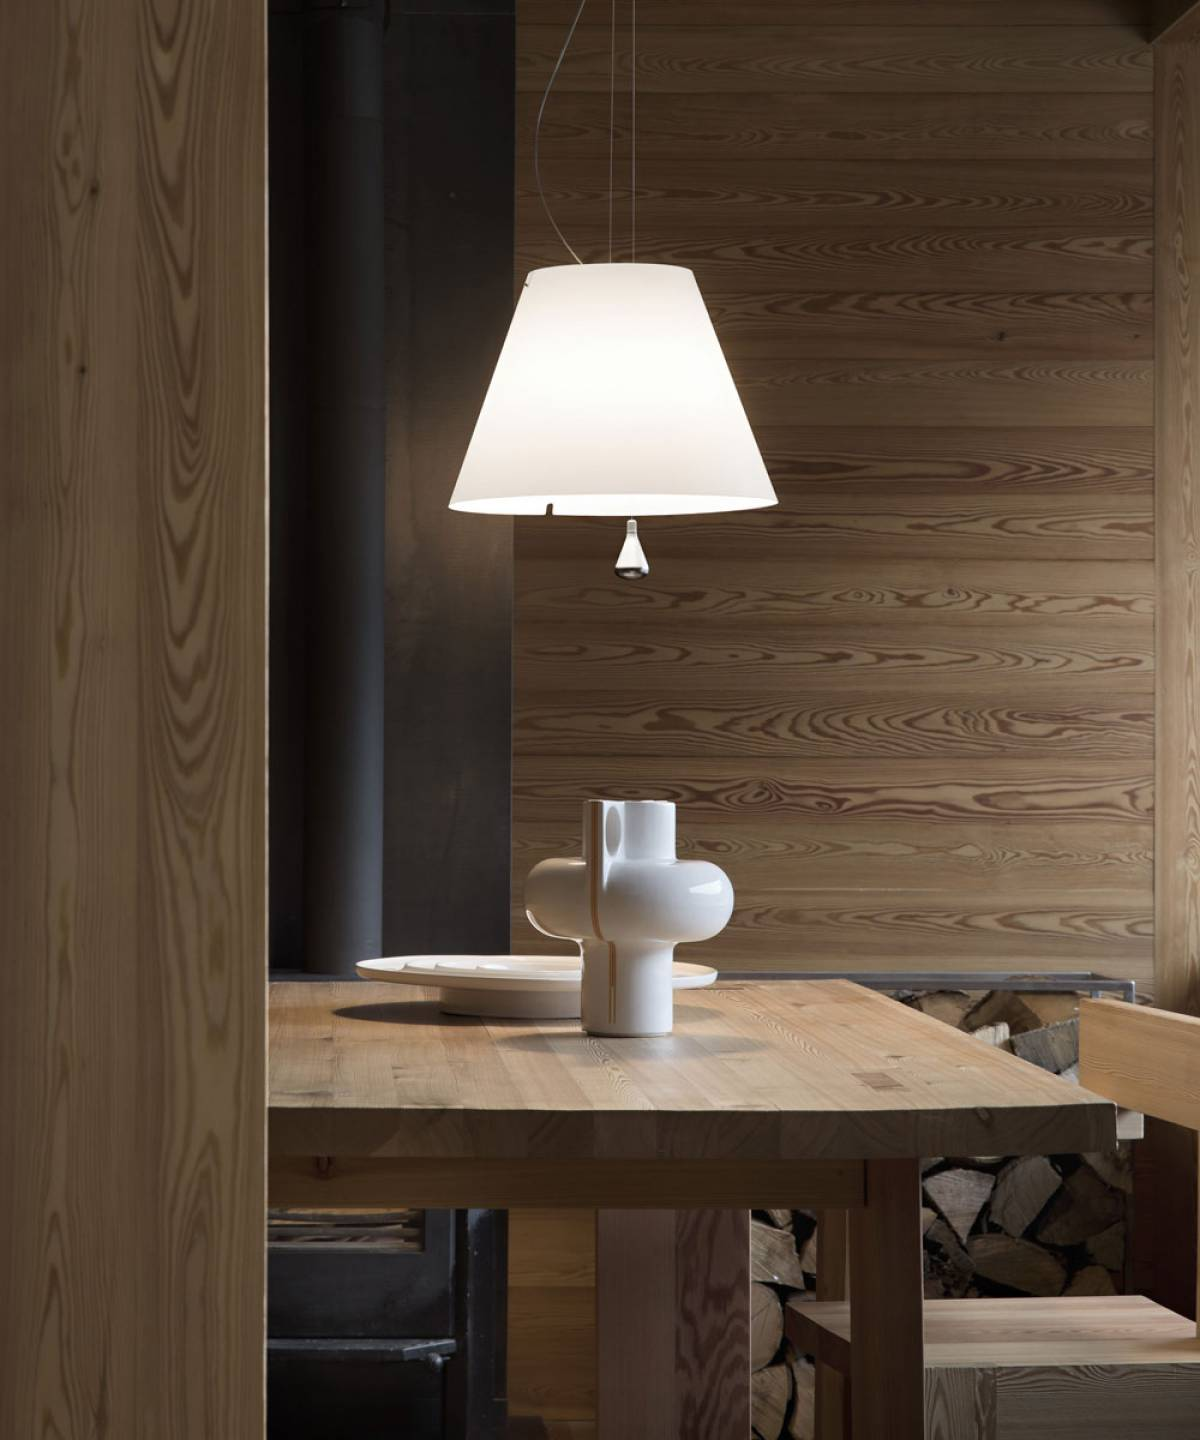 Costanza suspension lamp Luceplan